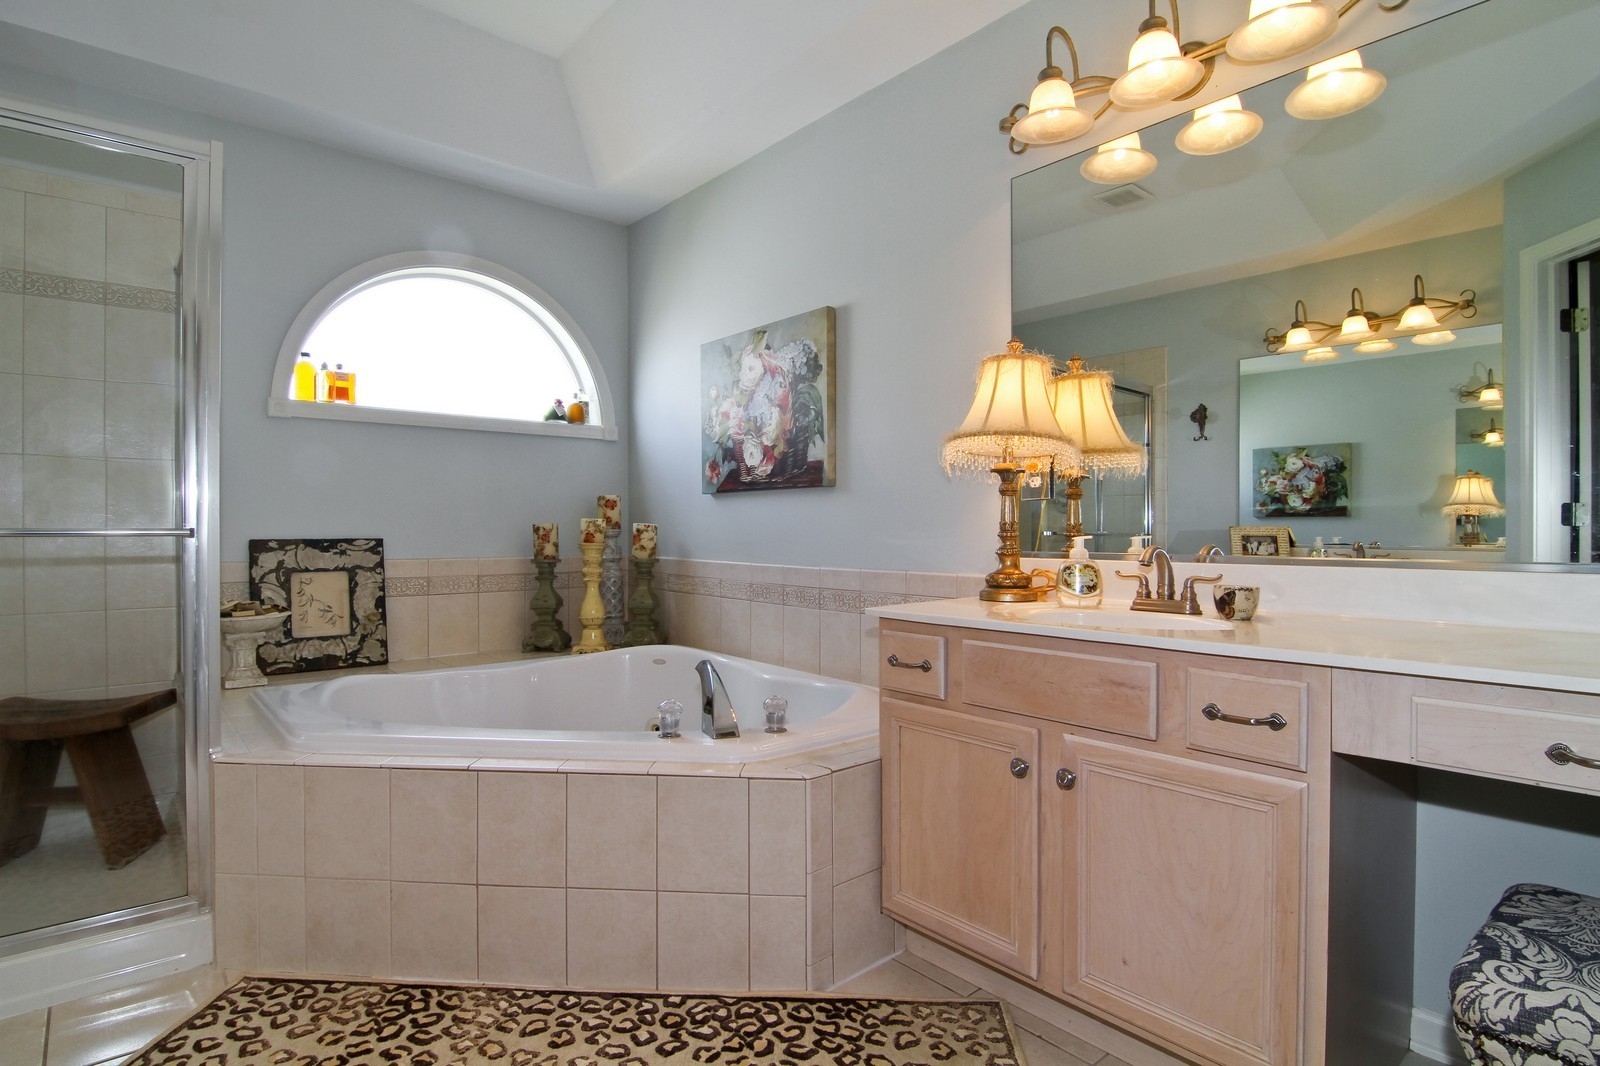 Real Estate Photography - 0N837 E Curtis Square, Geneva, IL, 60134 - Master Bathroom